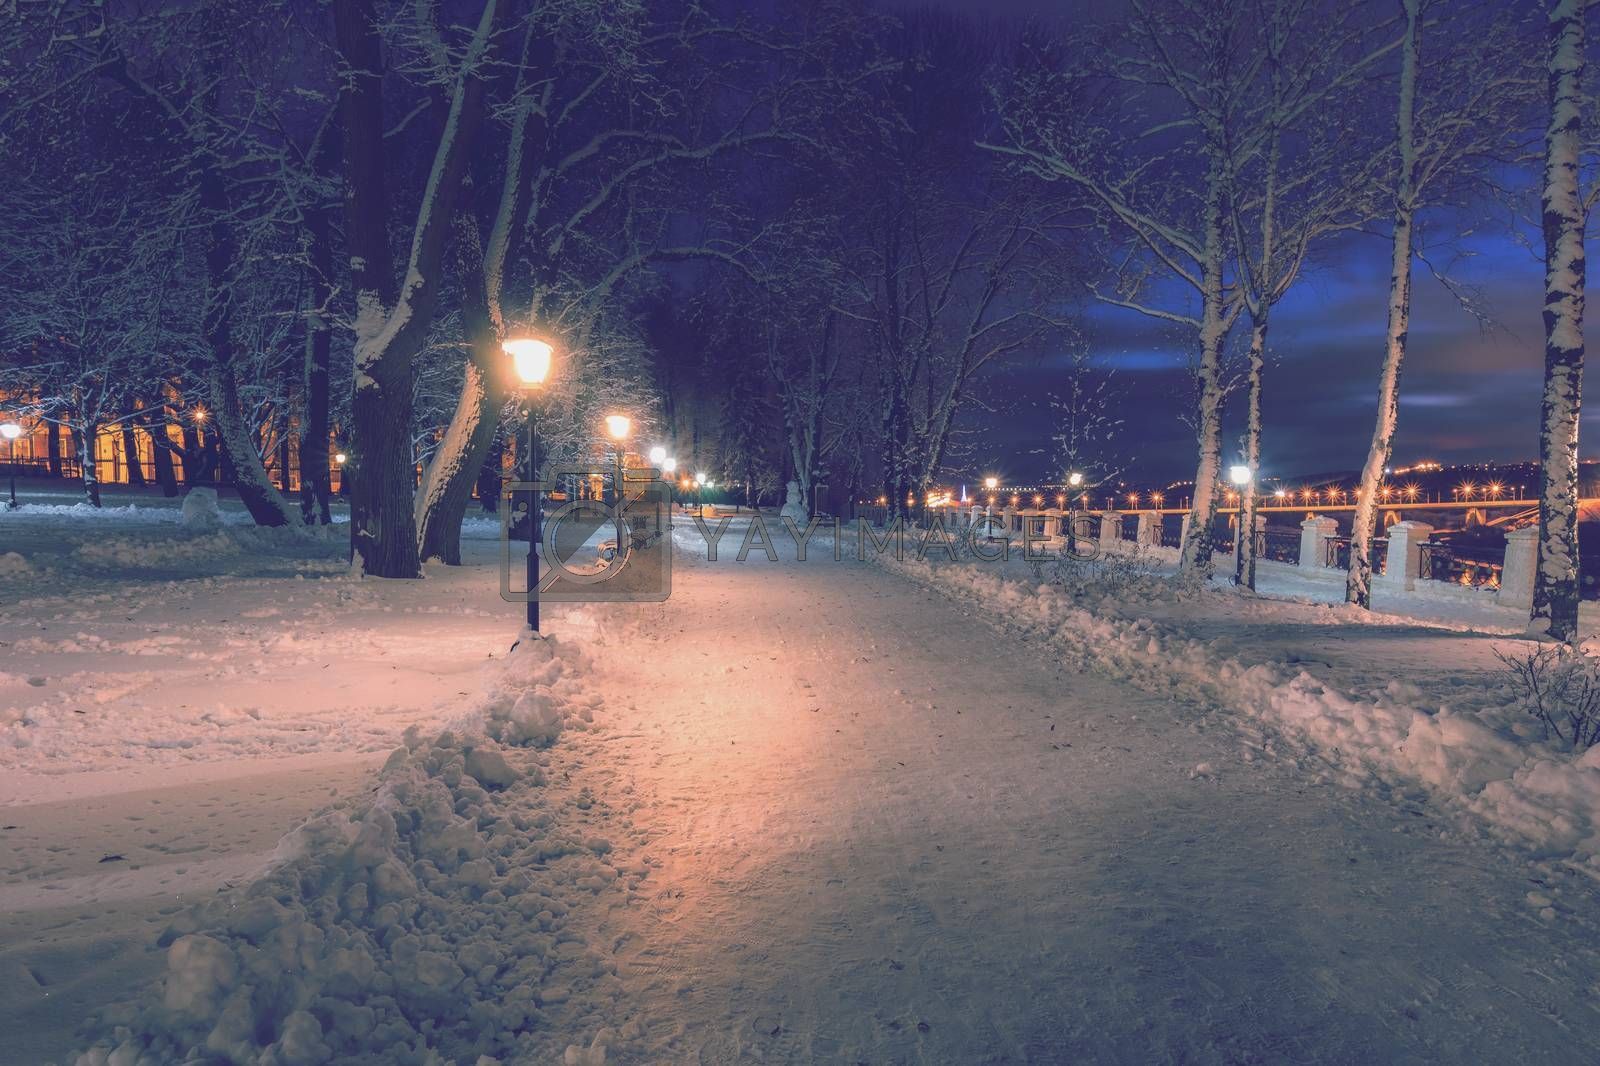 Winter park at night with christmas decorations and lights. by Eugene Yemelyanov